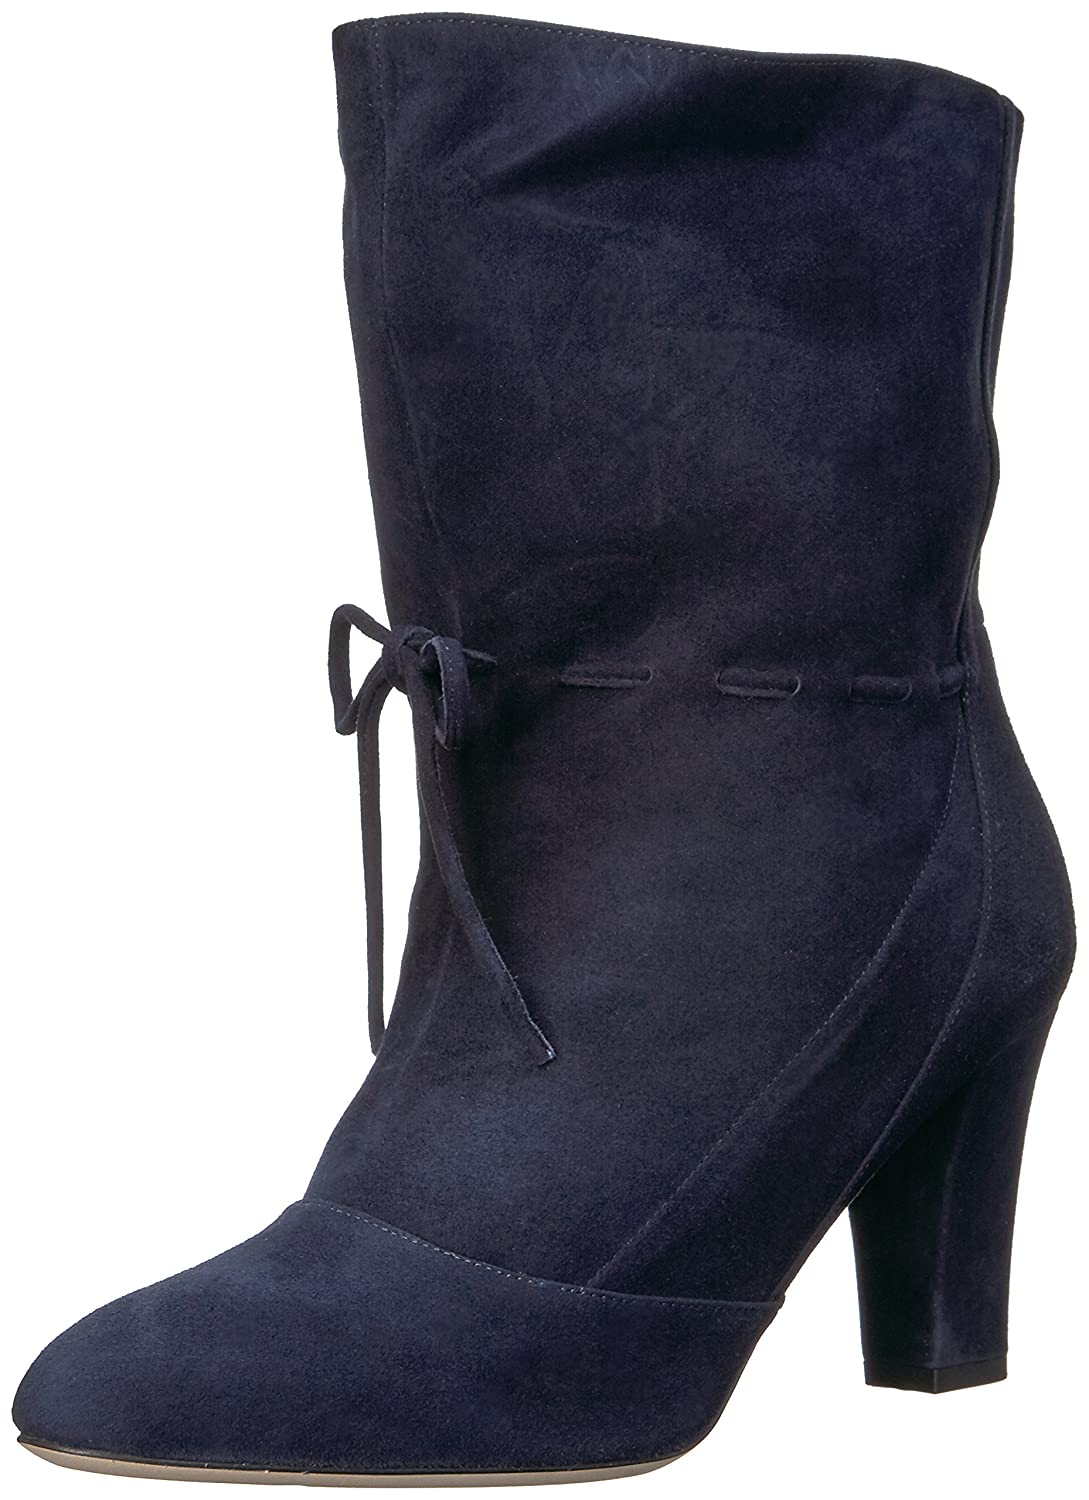 SJP by Sarah Jessica Parker Women's Khloe Fashion Boot B06VY28L96 37.5 B EU (7 US)|Navy